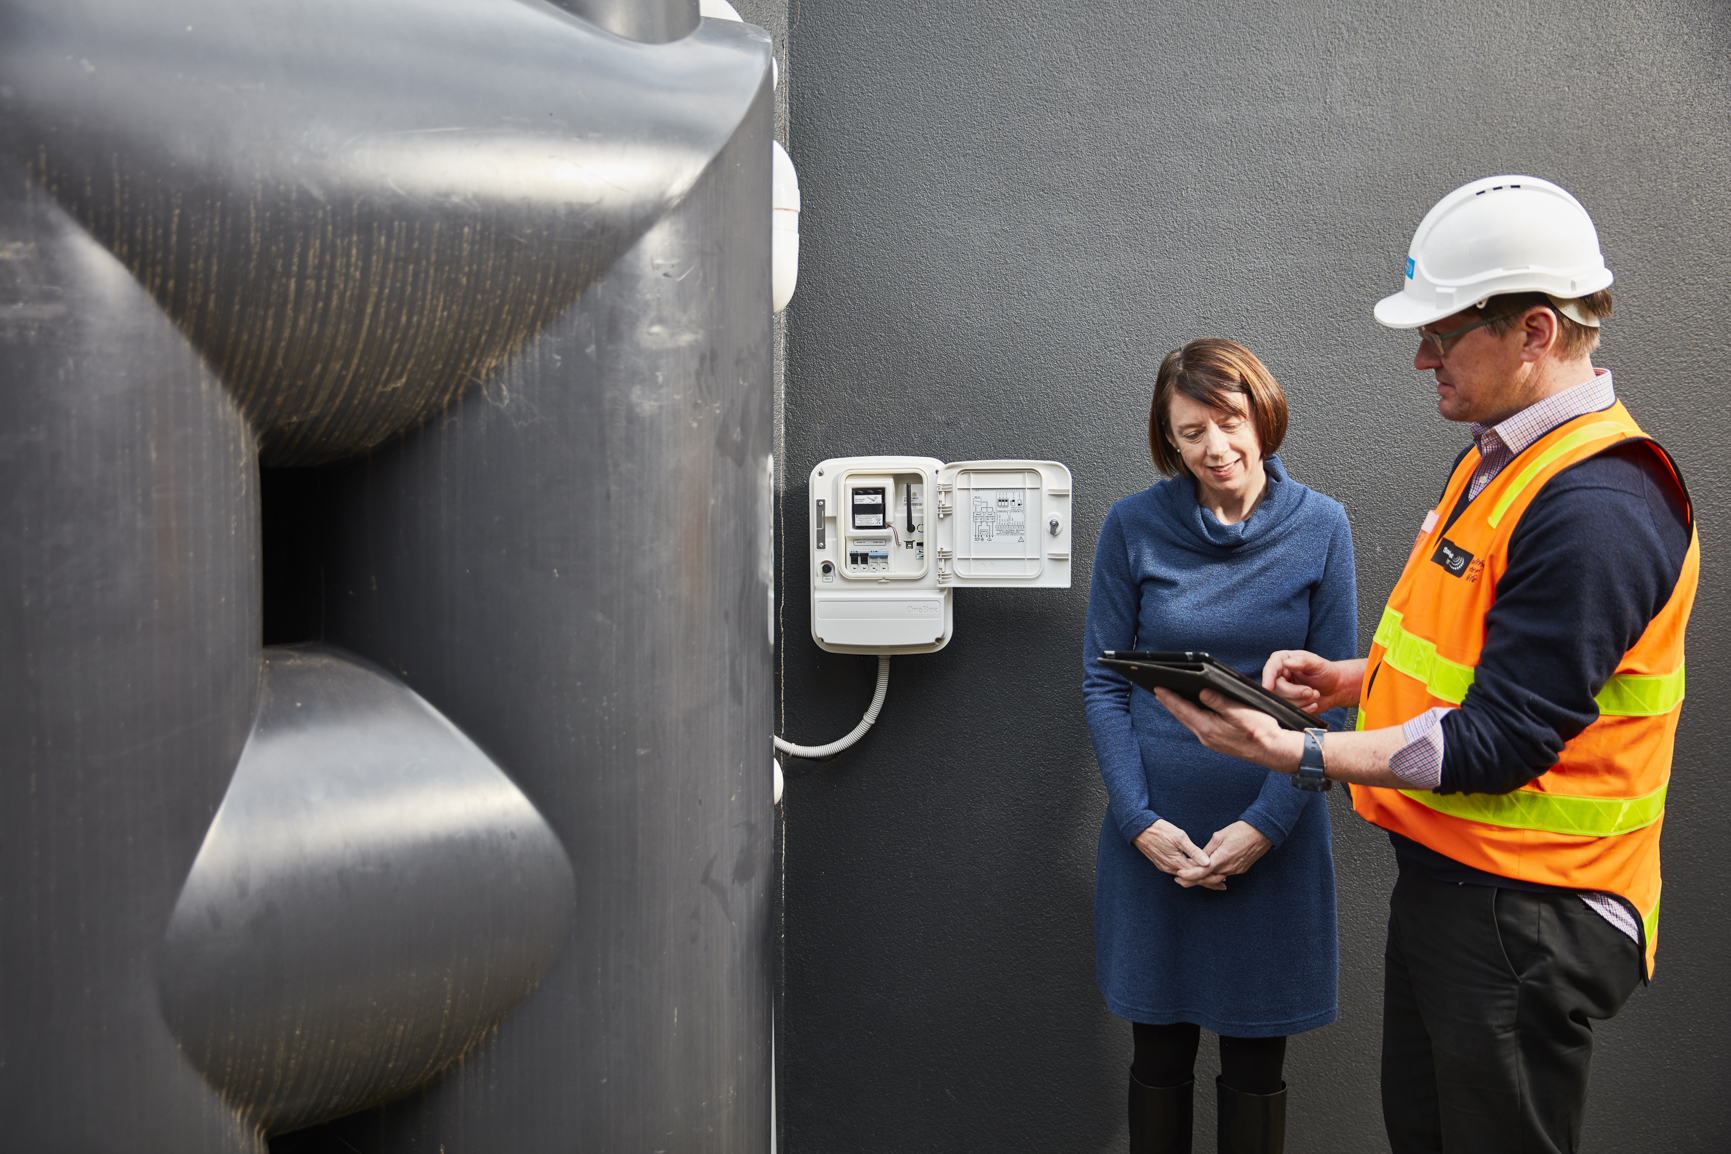 Man and woman standing next to a water meter, looking at an iPad